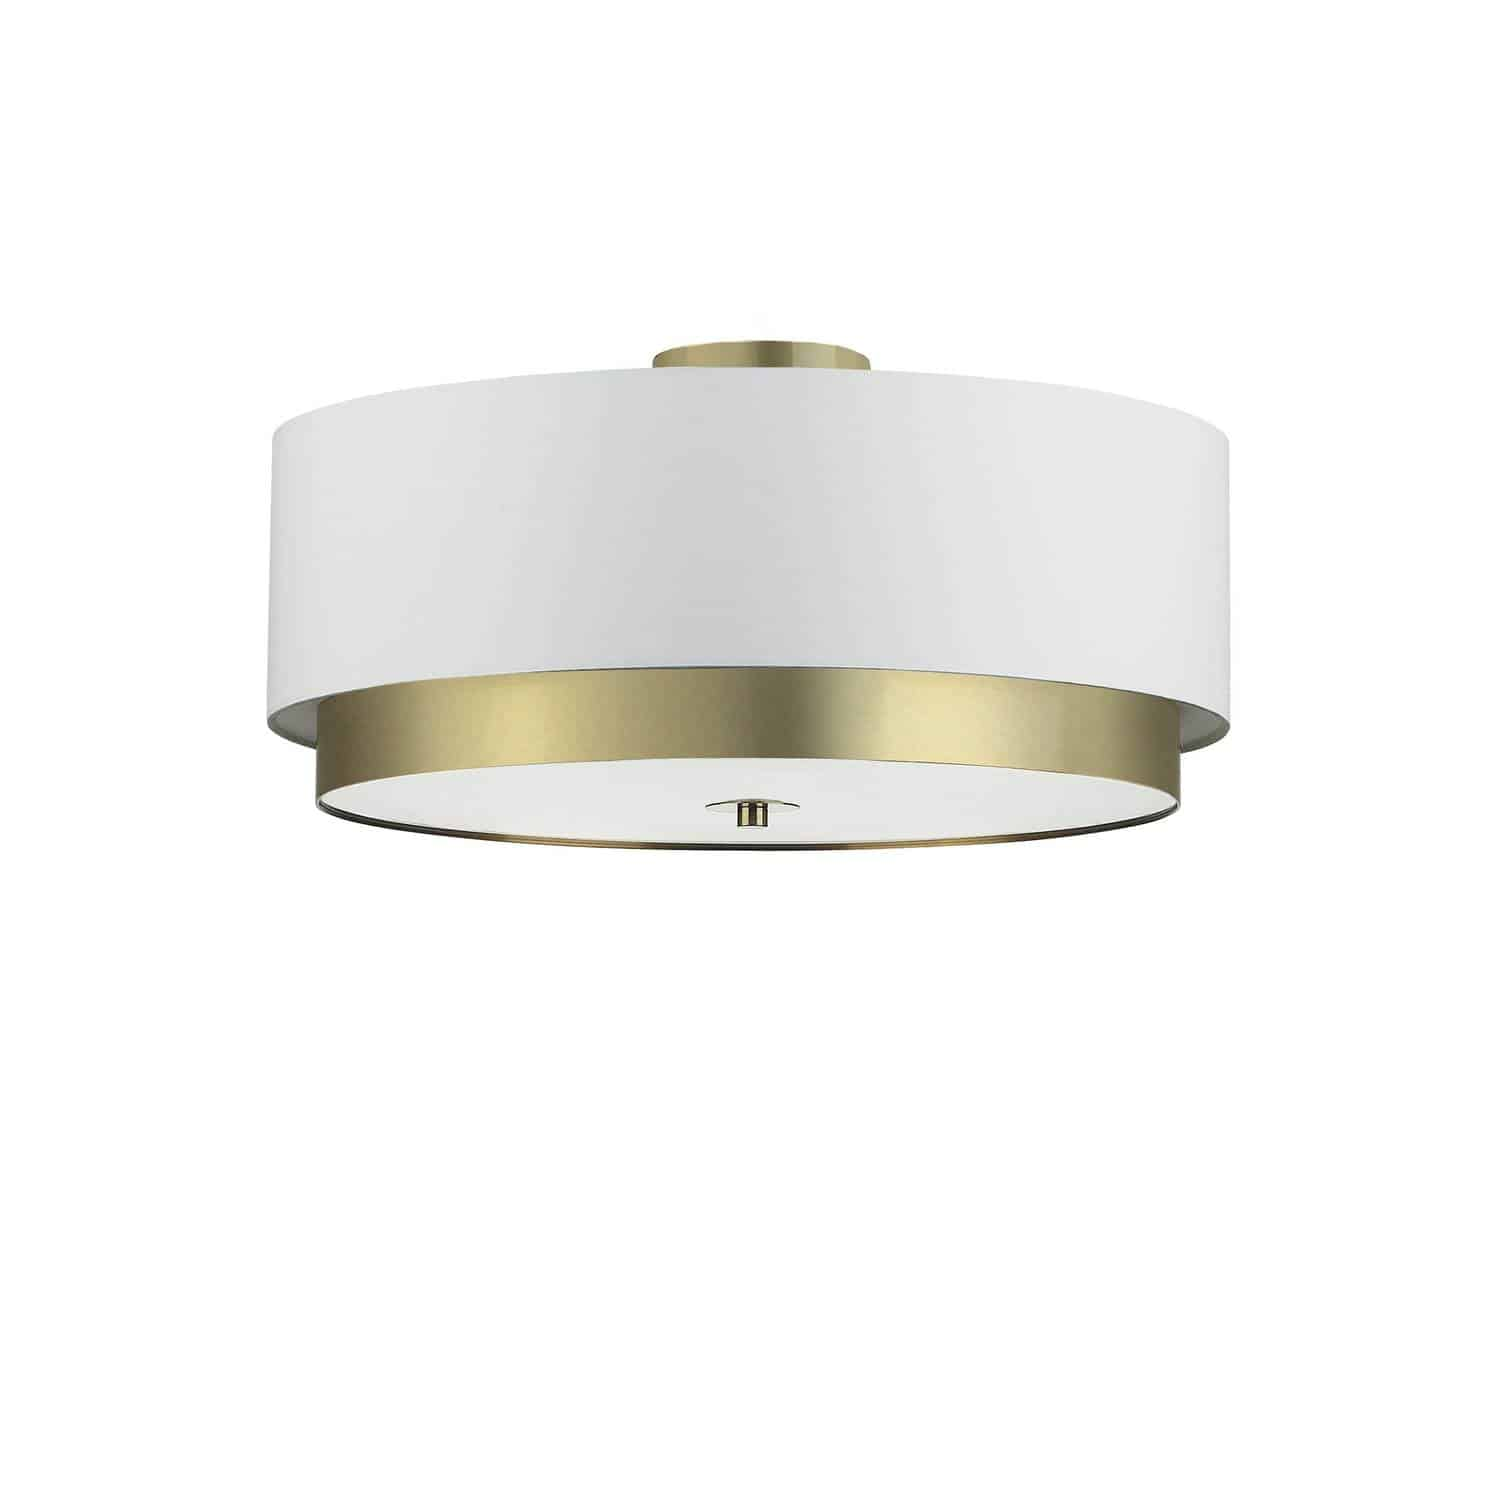 4 Light Flush Mount, Aged Brass with White Shade, Frosted Glass Diffuser